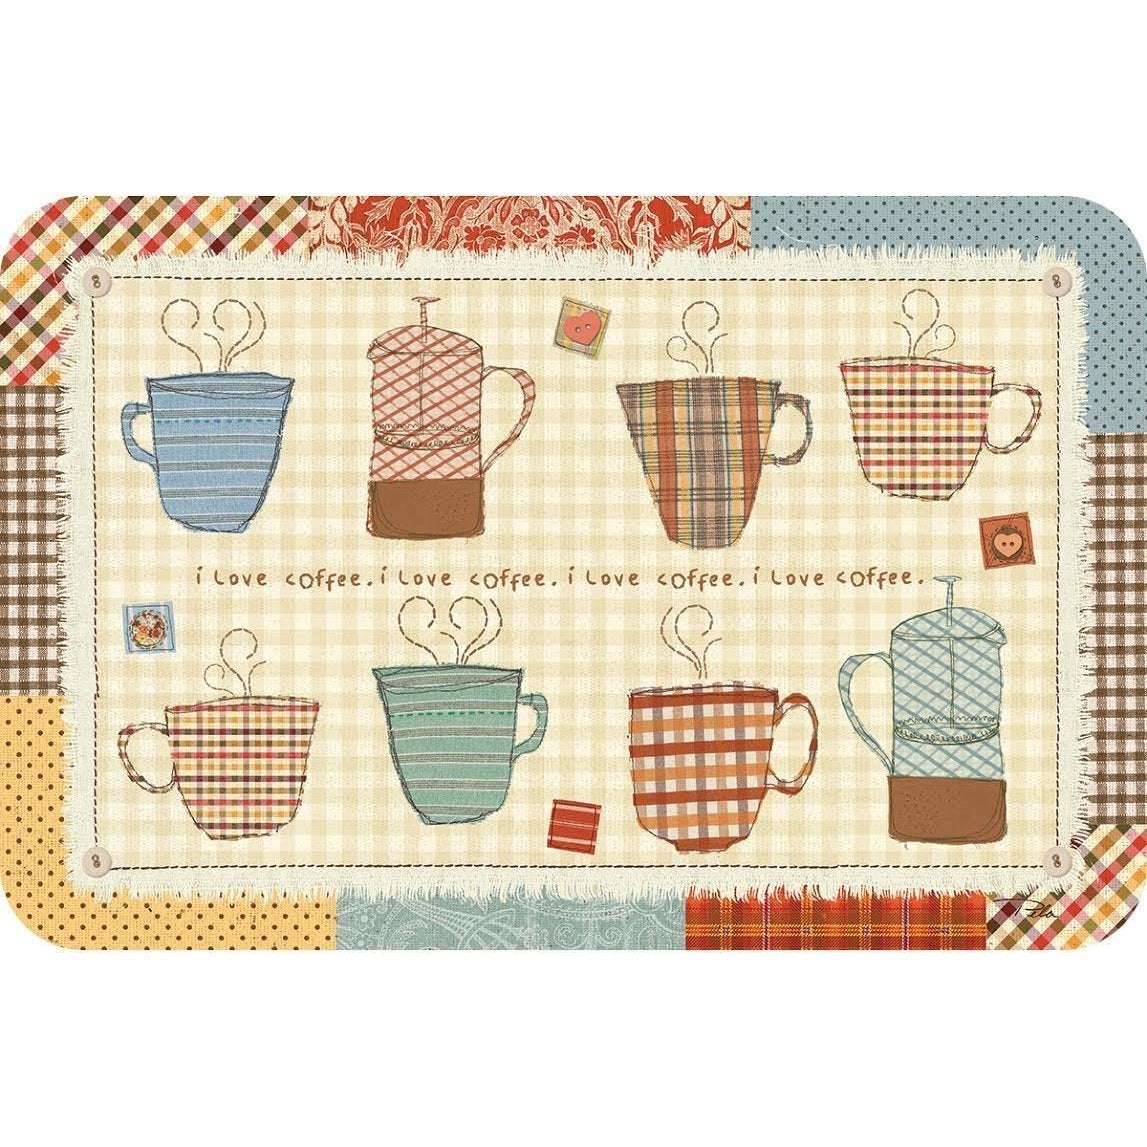 Counterart Reversible Plastic Wipe Clean Placemats Patch